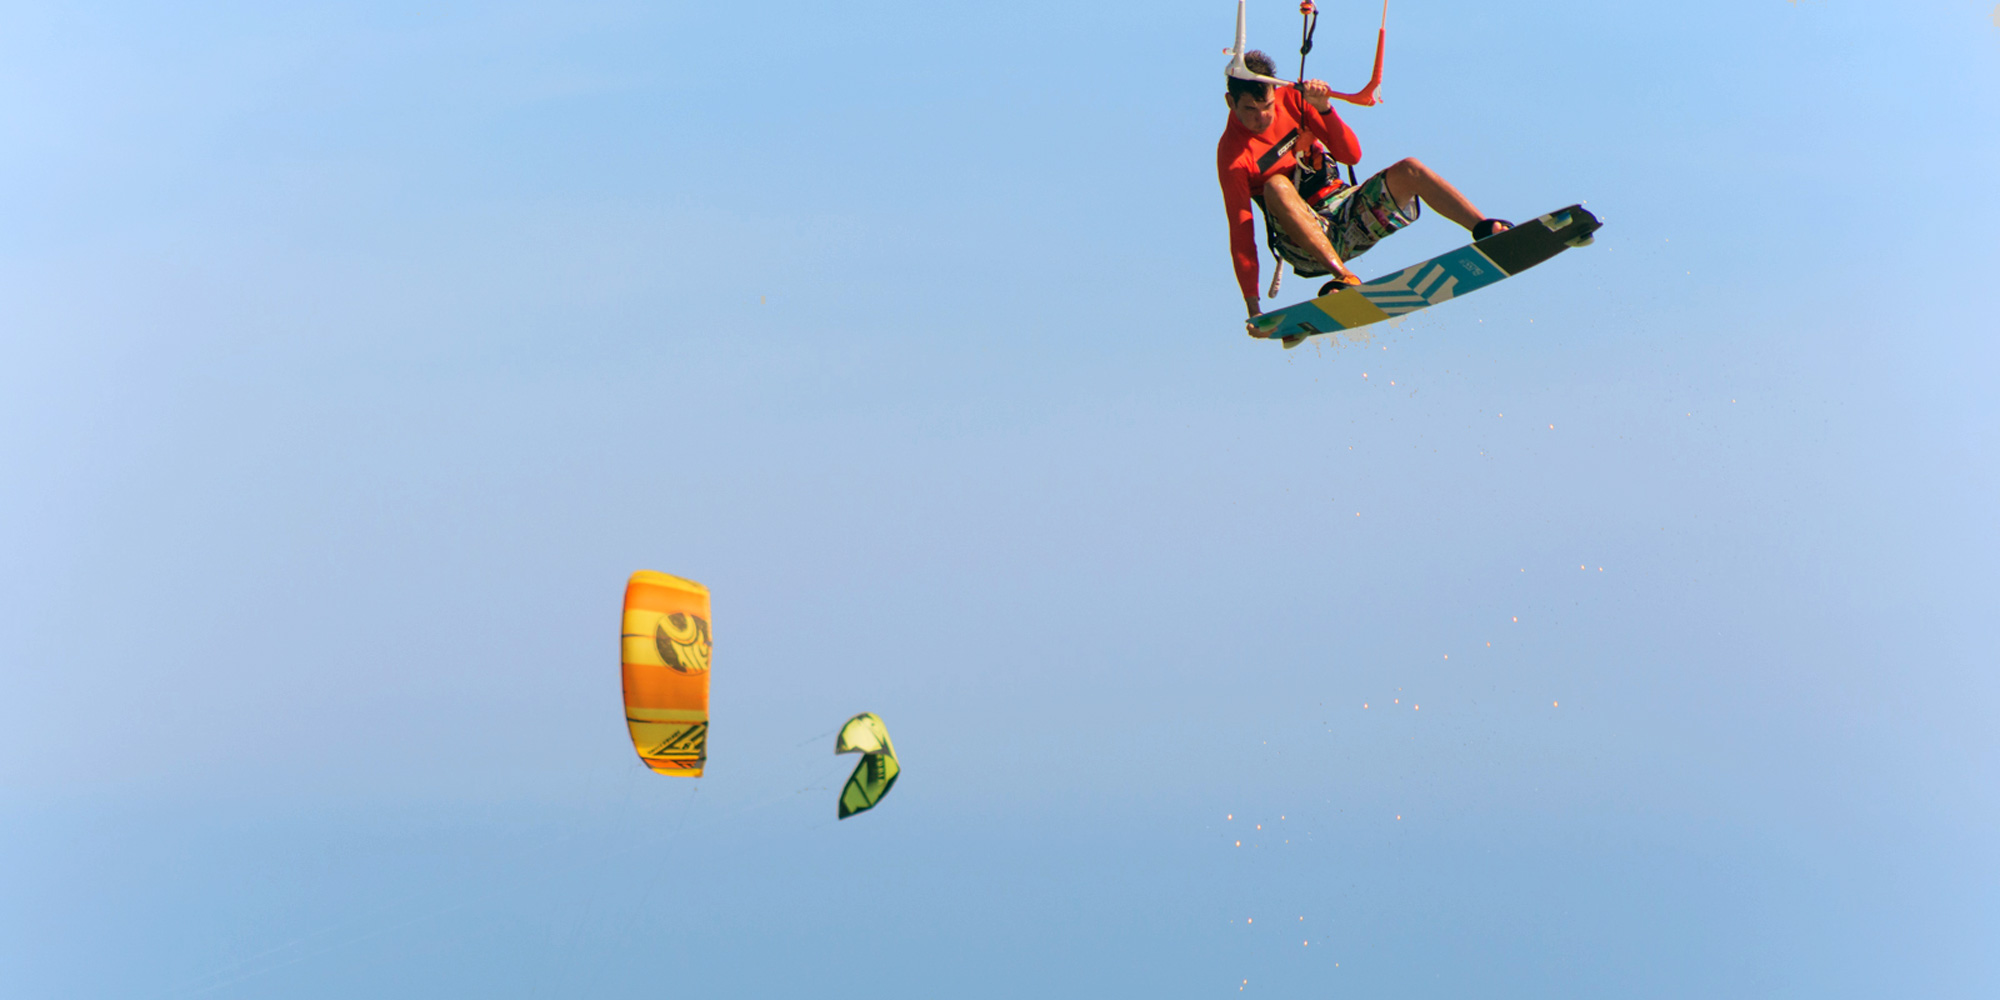 High jump kite lessons sardinia italy is solinas